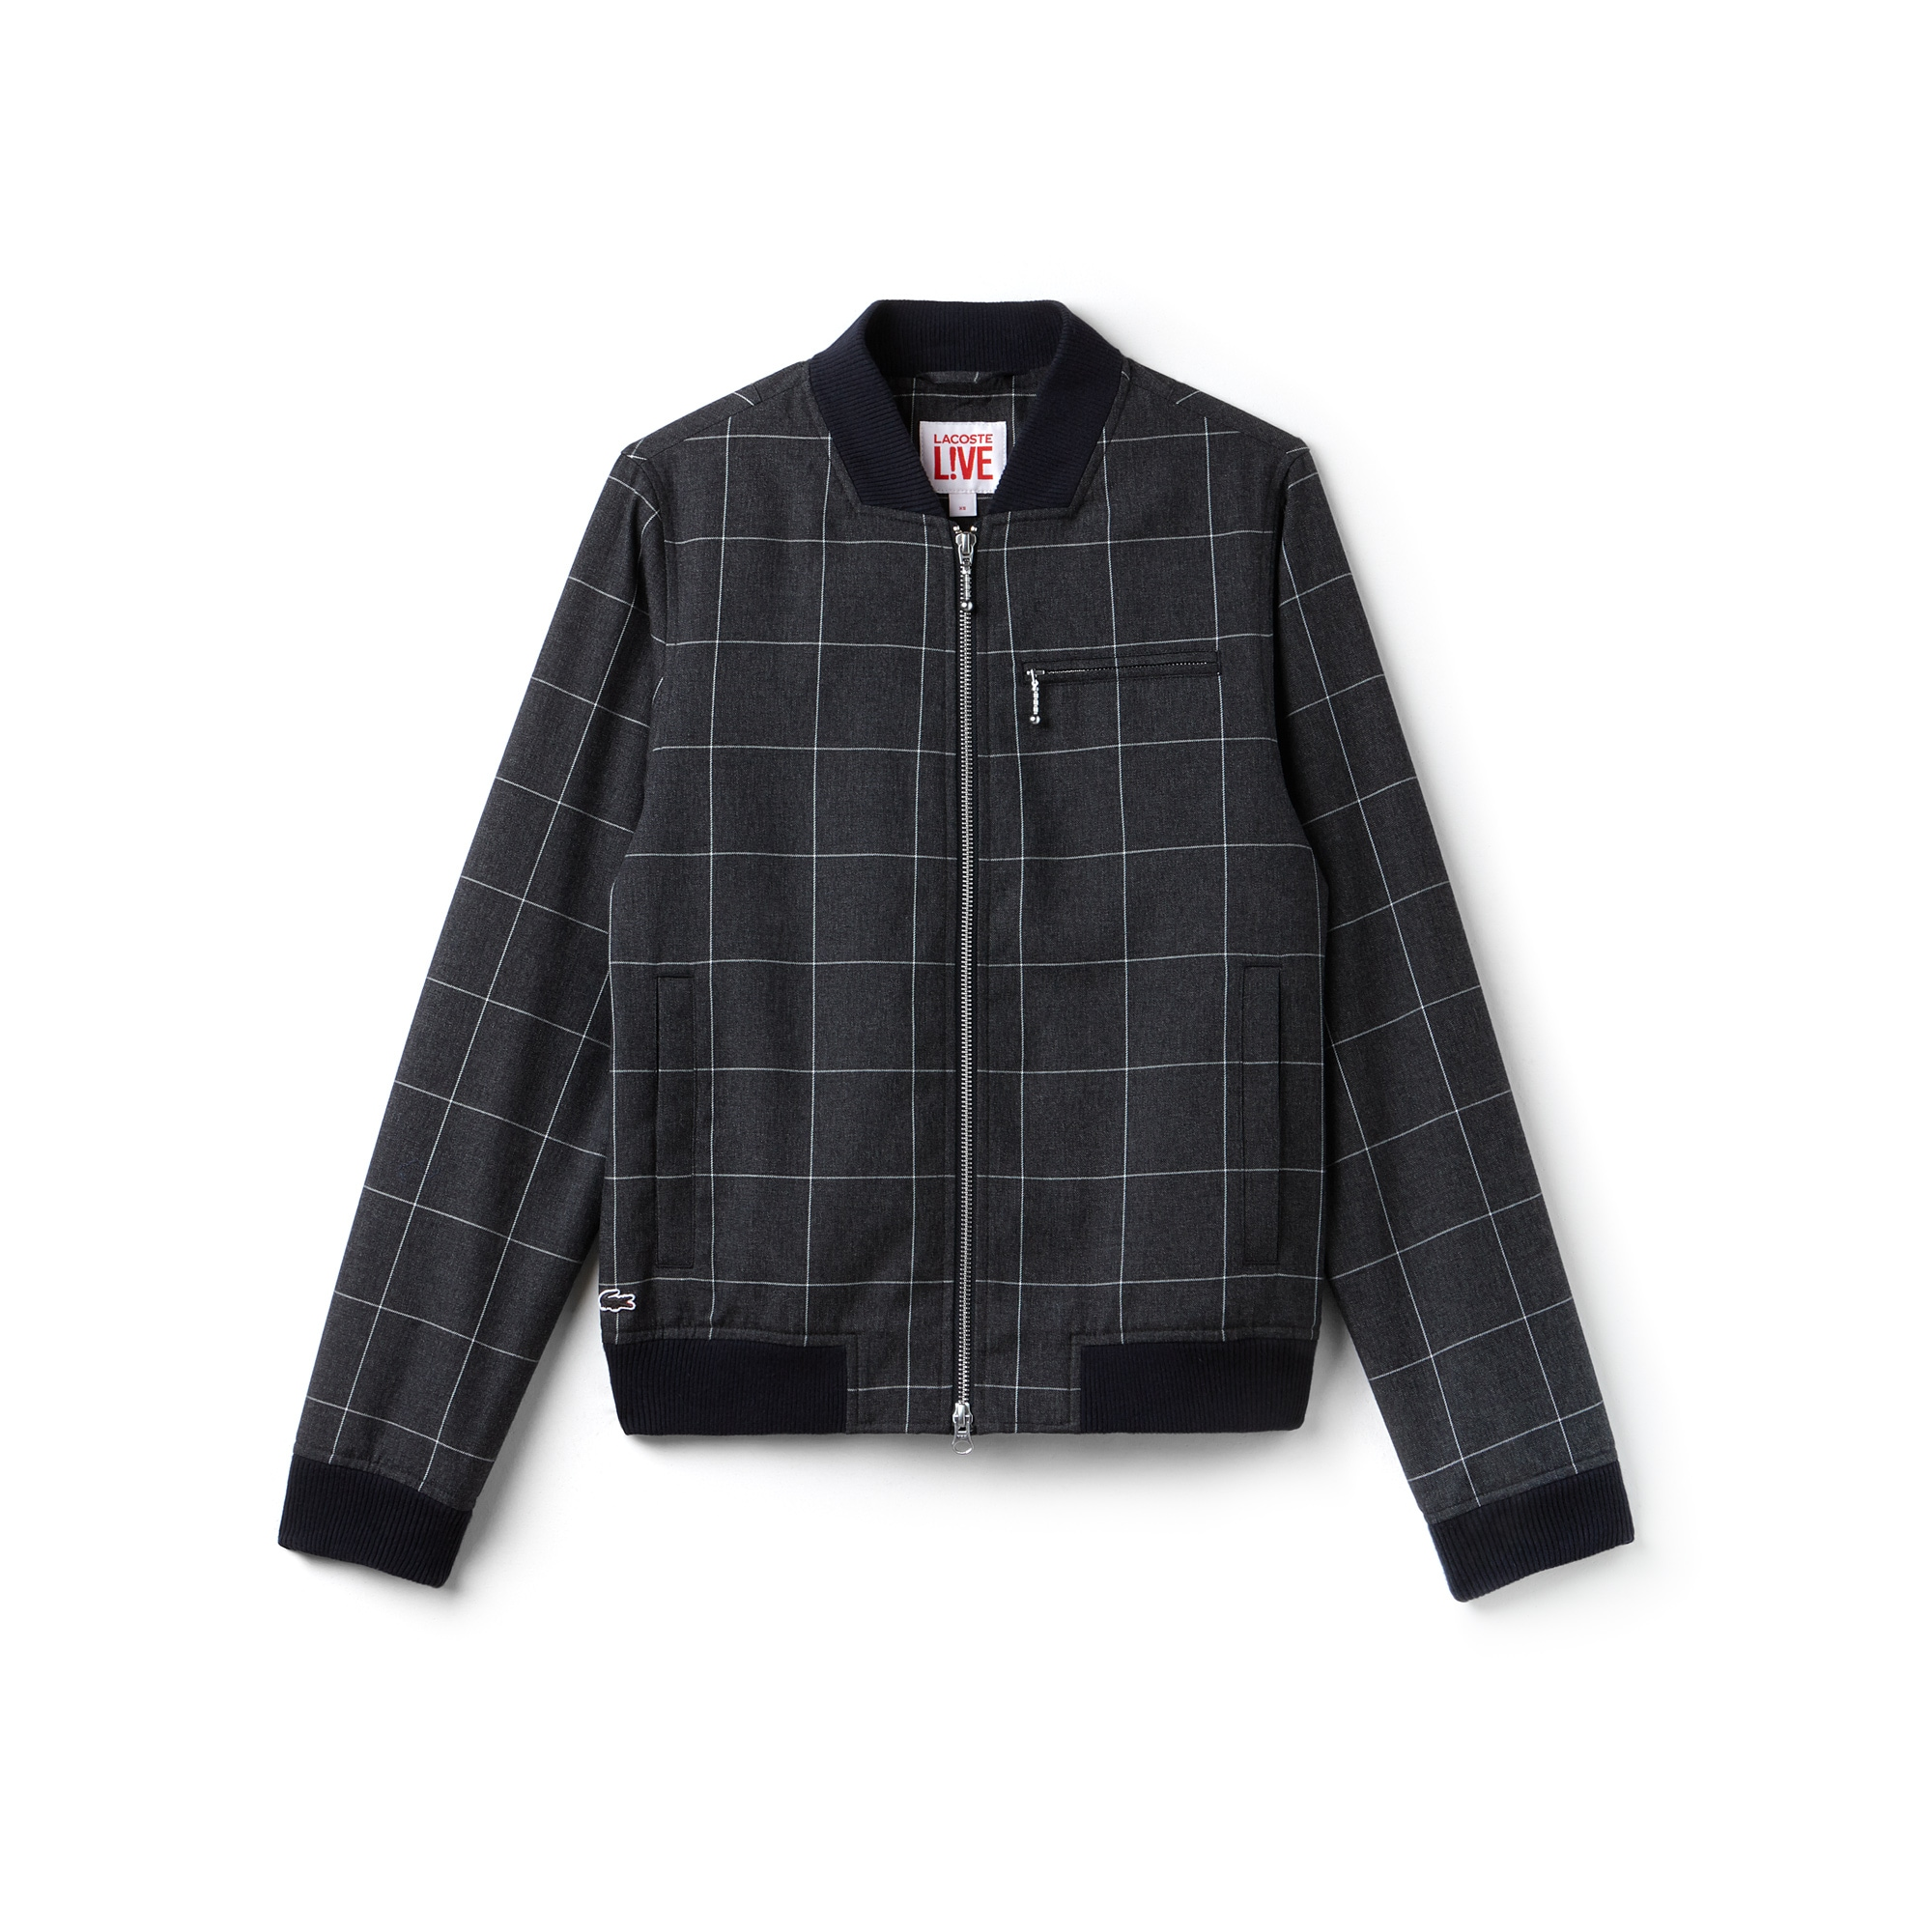 Unisex Lacoste LIVE Check Flannel Bomber Jacket